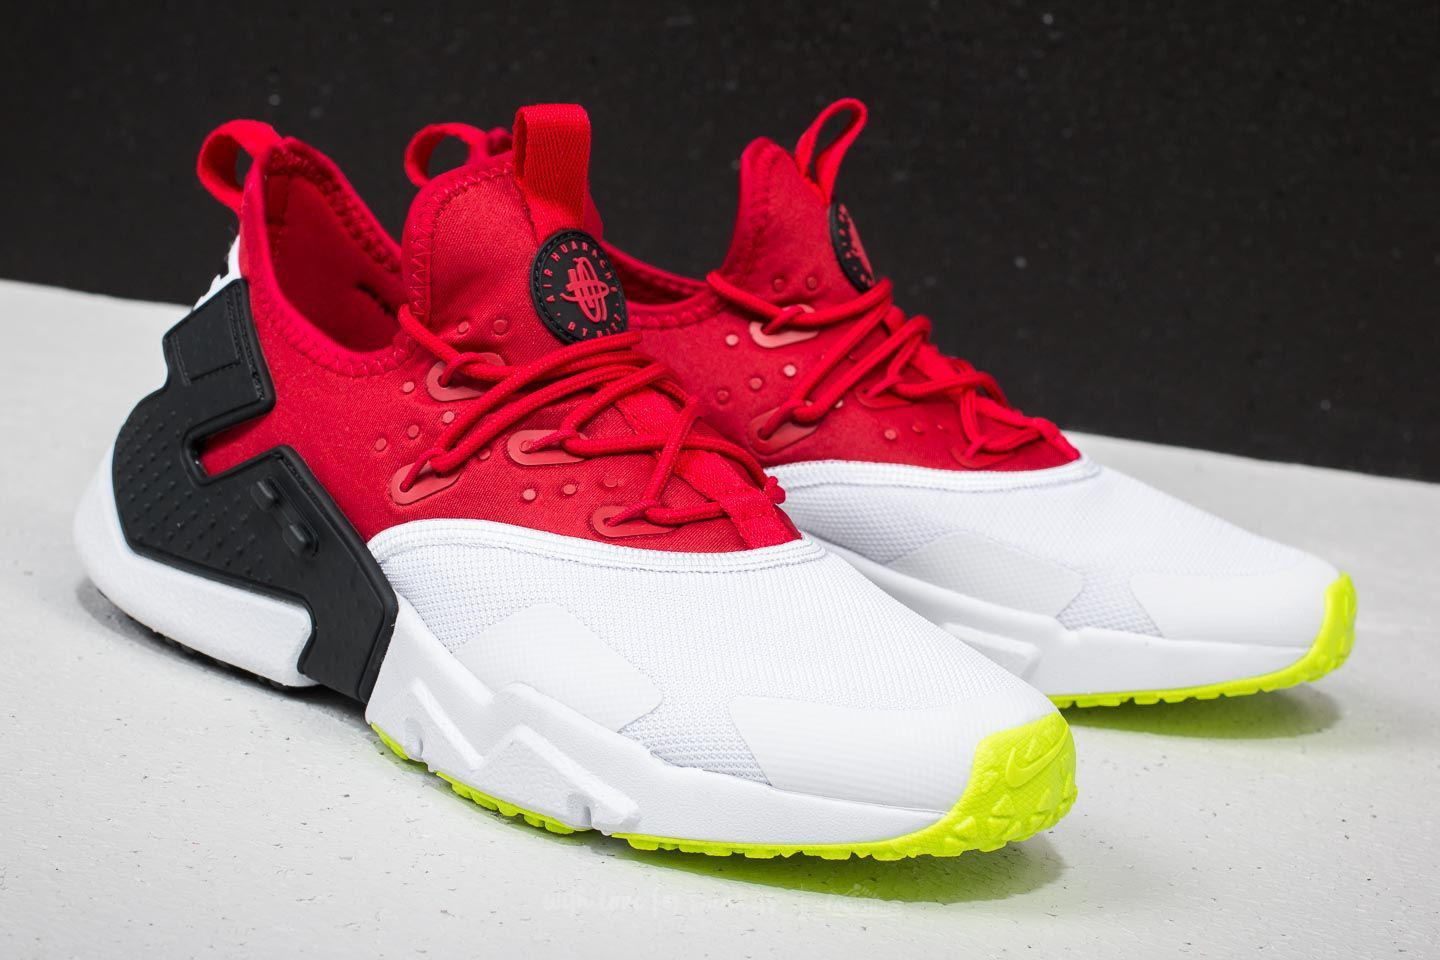 3413224a5c71 ... sweden lyst nike air huarache drift gym red white black volt in red for  men 4bac3